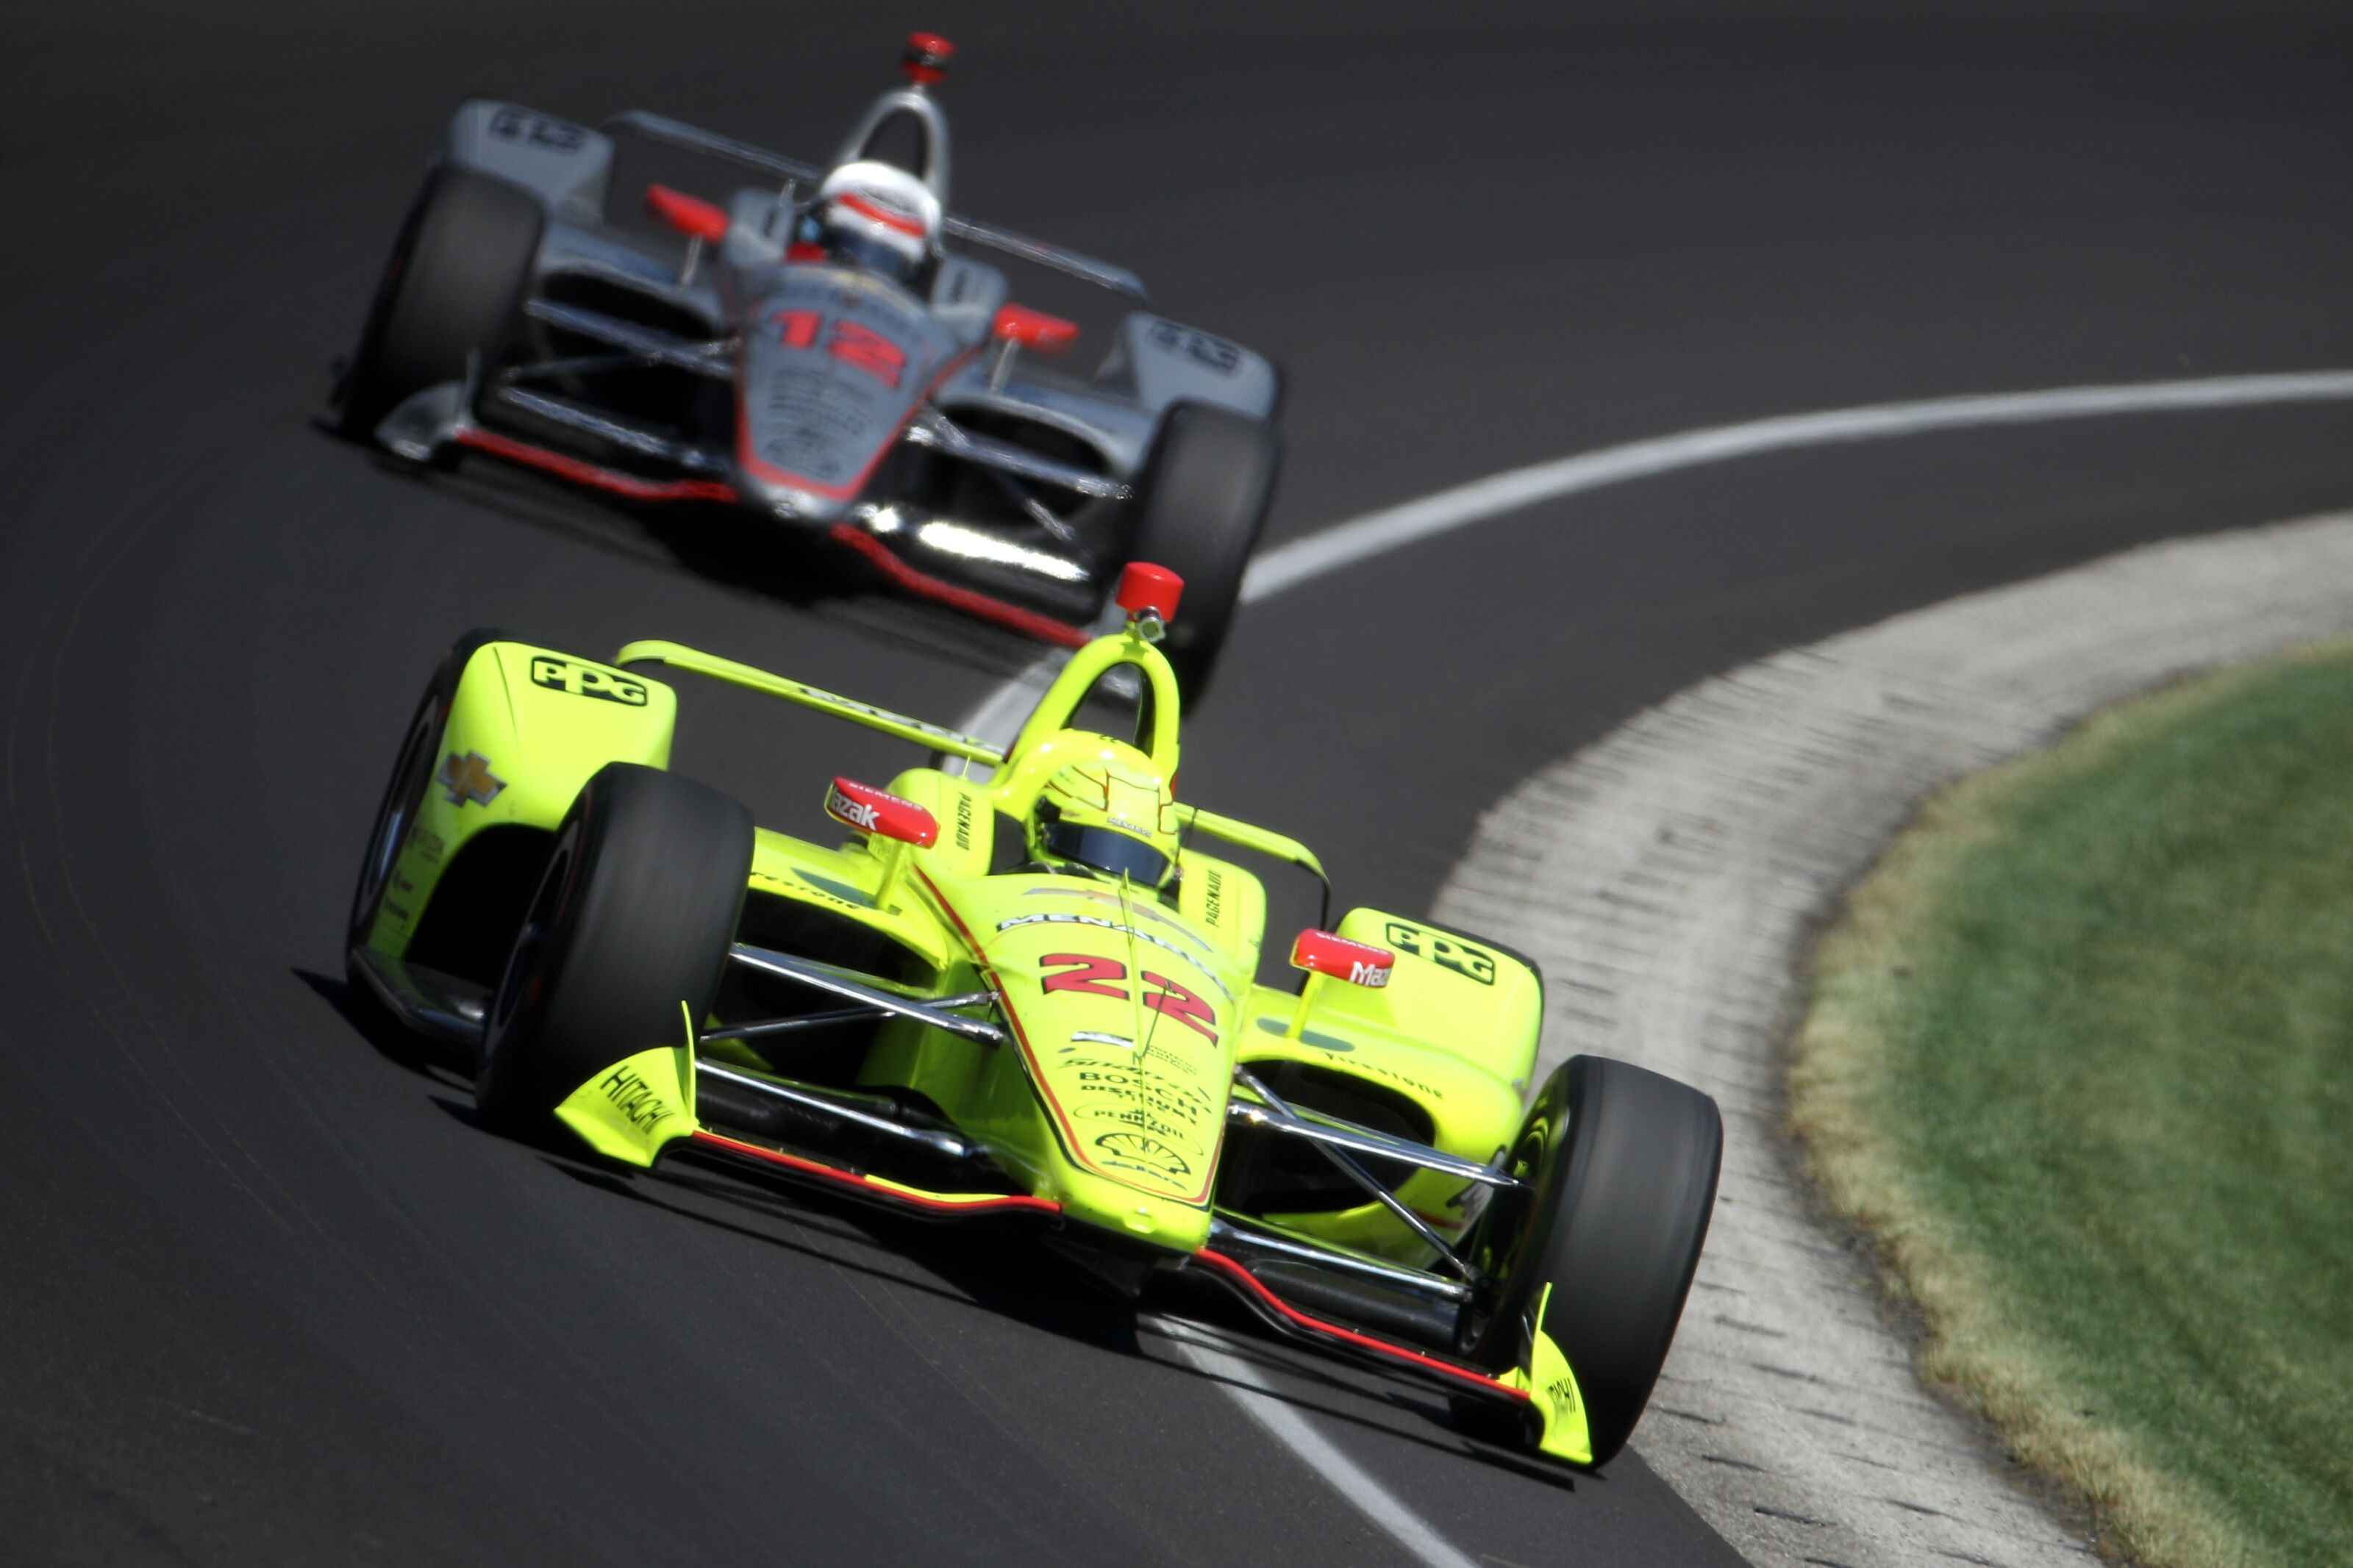 IndyCar: Starting lineup for the 103rd running of the Indy 500